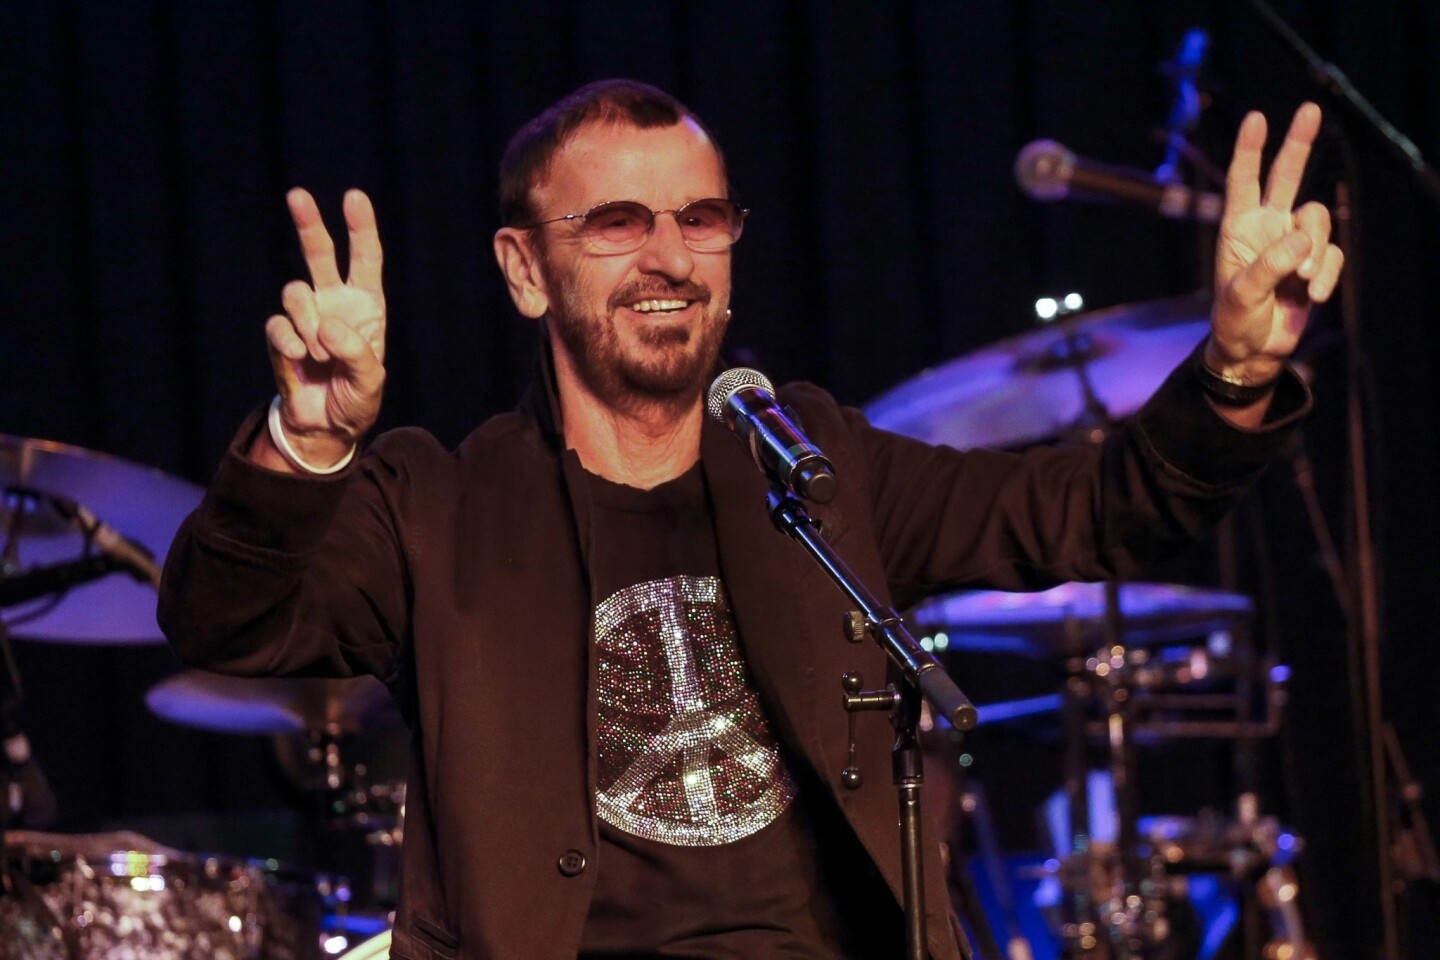 """Ringo Starr performs in Hollywood as part of an intimate Wednesday event tied to his new book """"Photograph,"""" which includes images from throughout his life, including, yes, his years in the Beatles."""